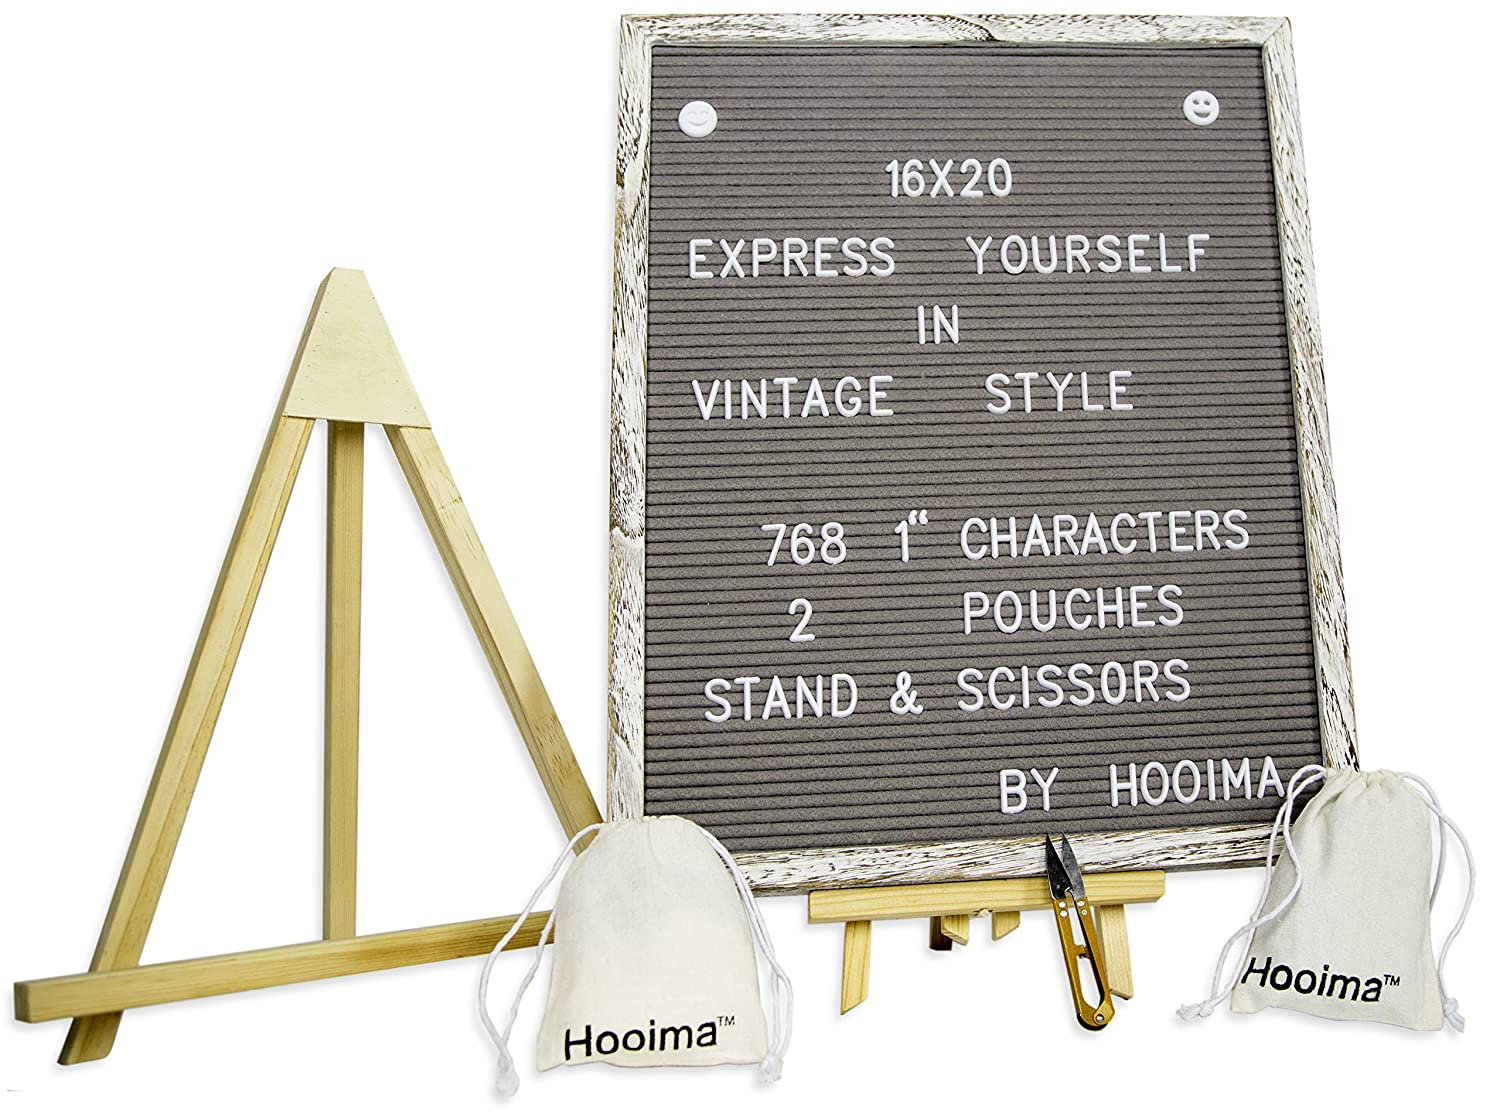 The 2018 Changeable Gray Felt Letter Board Message Sign with Elegent Wooden Stand | White Vintage Wood Frame with Extra Letters | Size 16x20 - All-in-One Pack Includes Also 2 Organizing Bags and More Eco Shop Landz